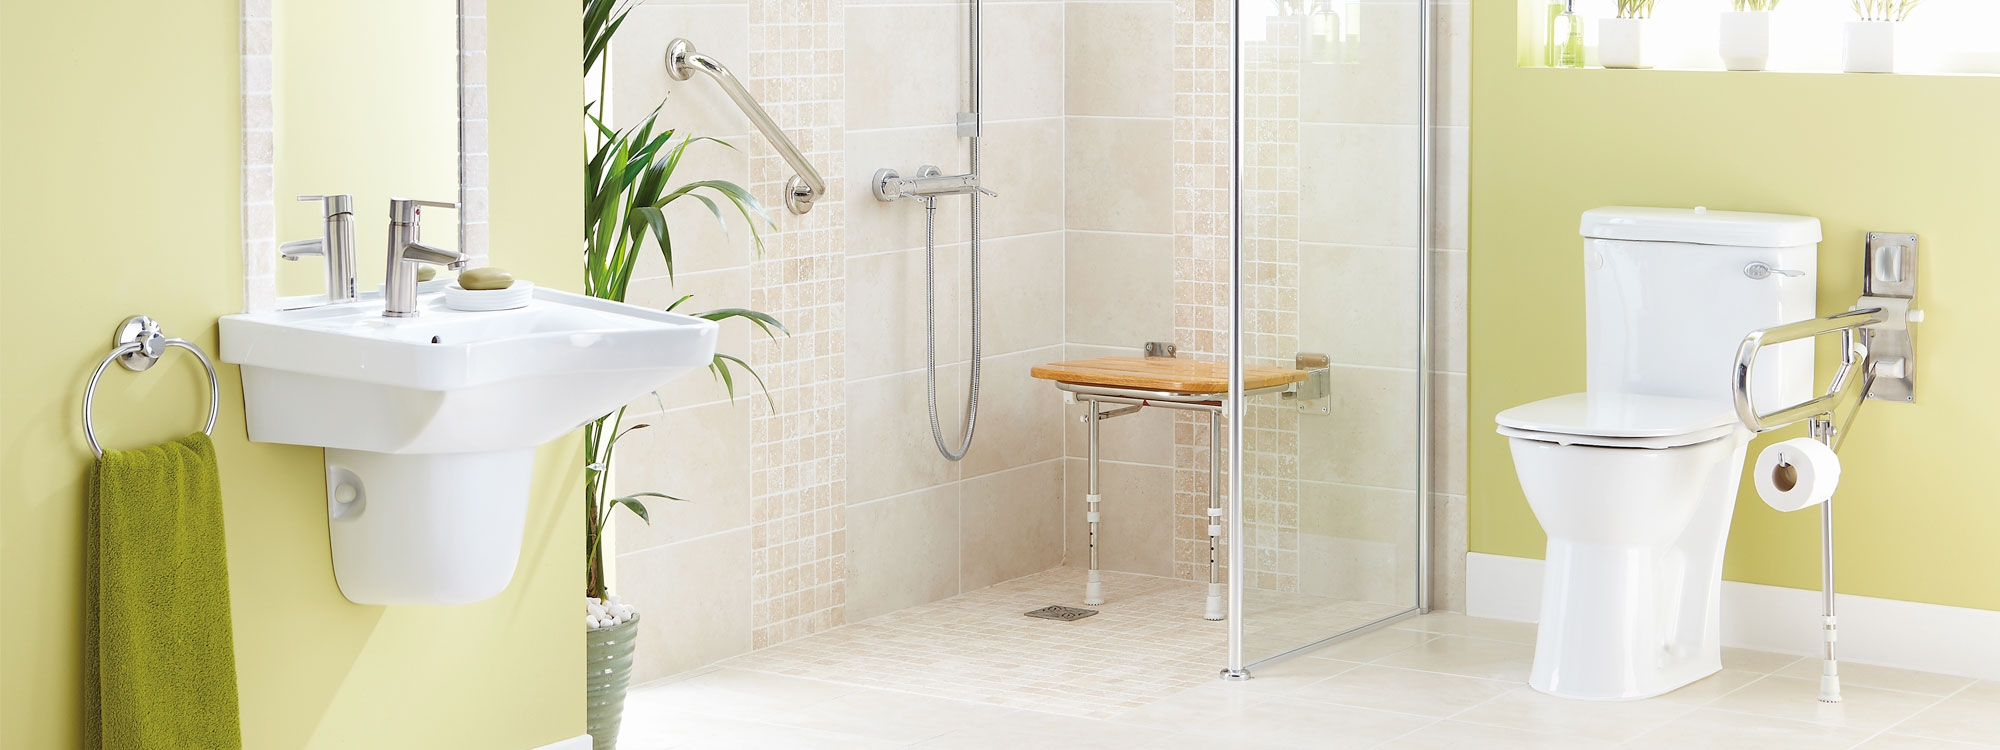 Safe Practical Bathrooms Designed Fit By More Ability